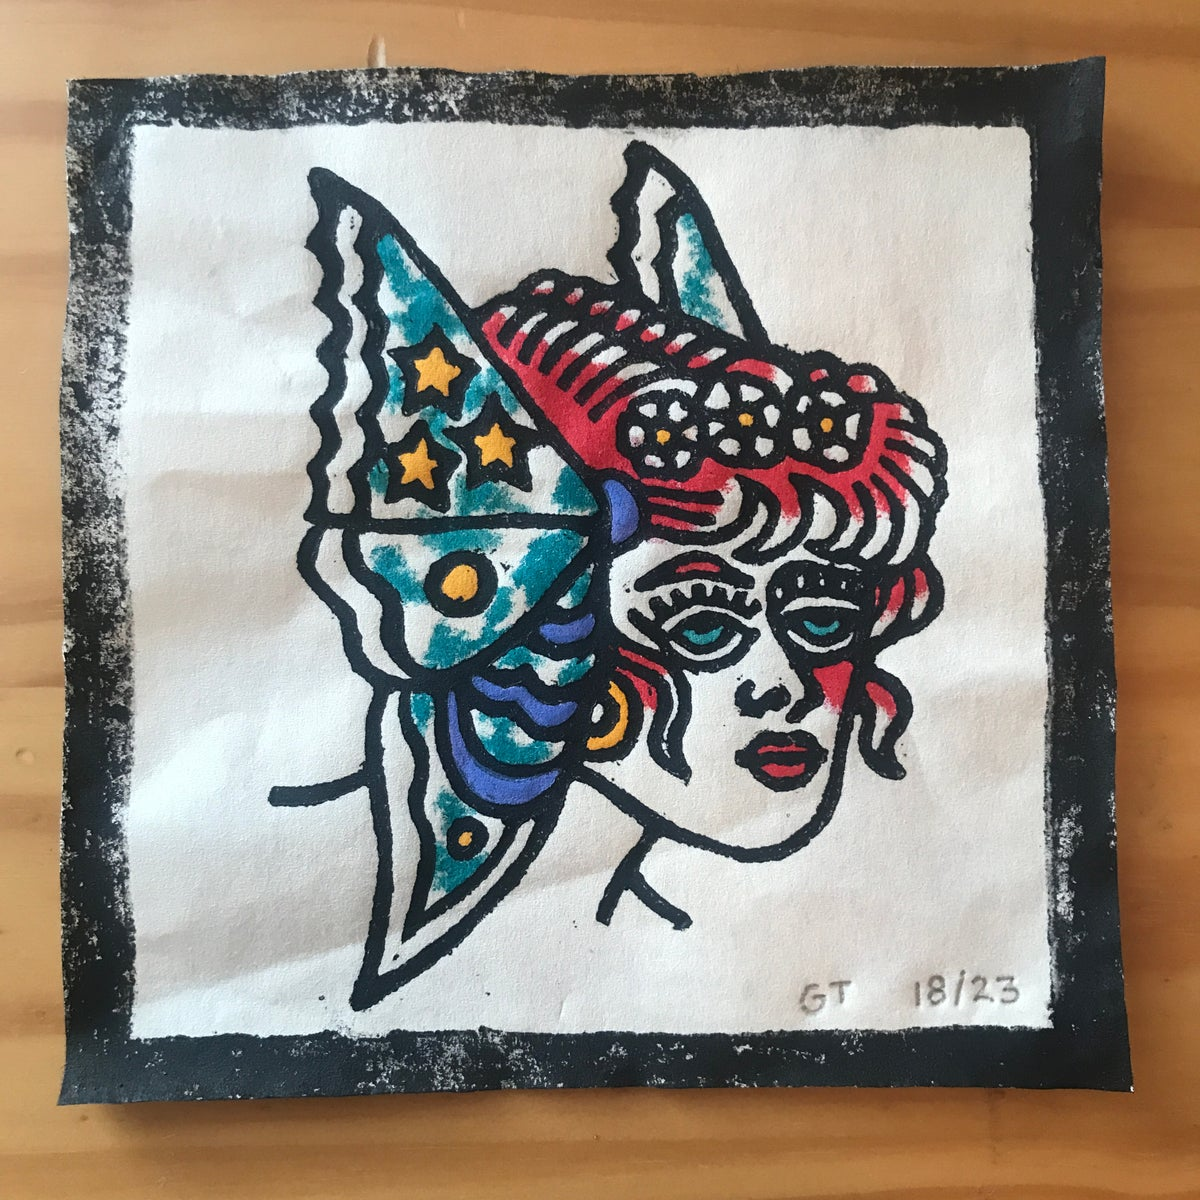 Image of Butterfly lady head woodcut print - 18/23